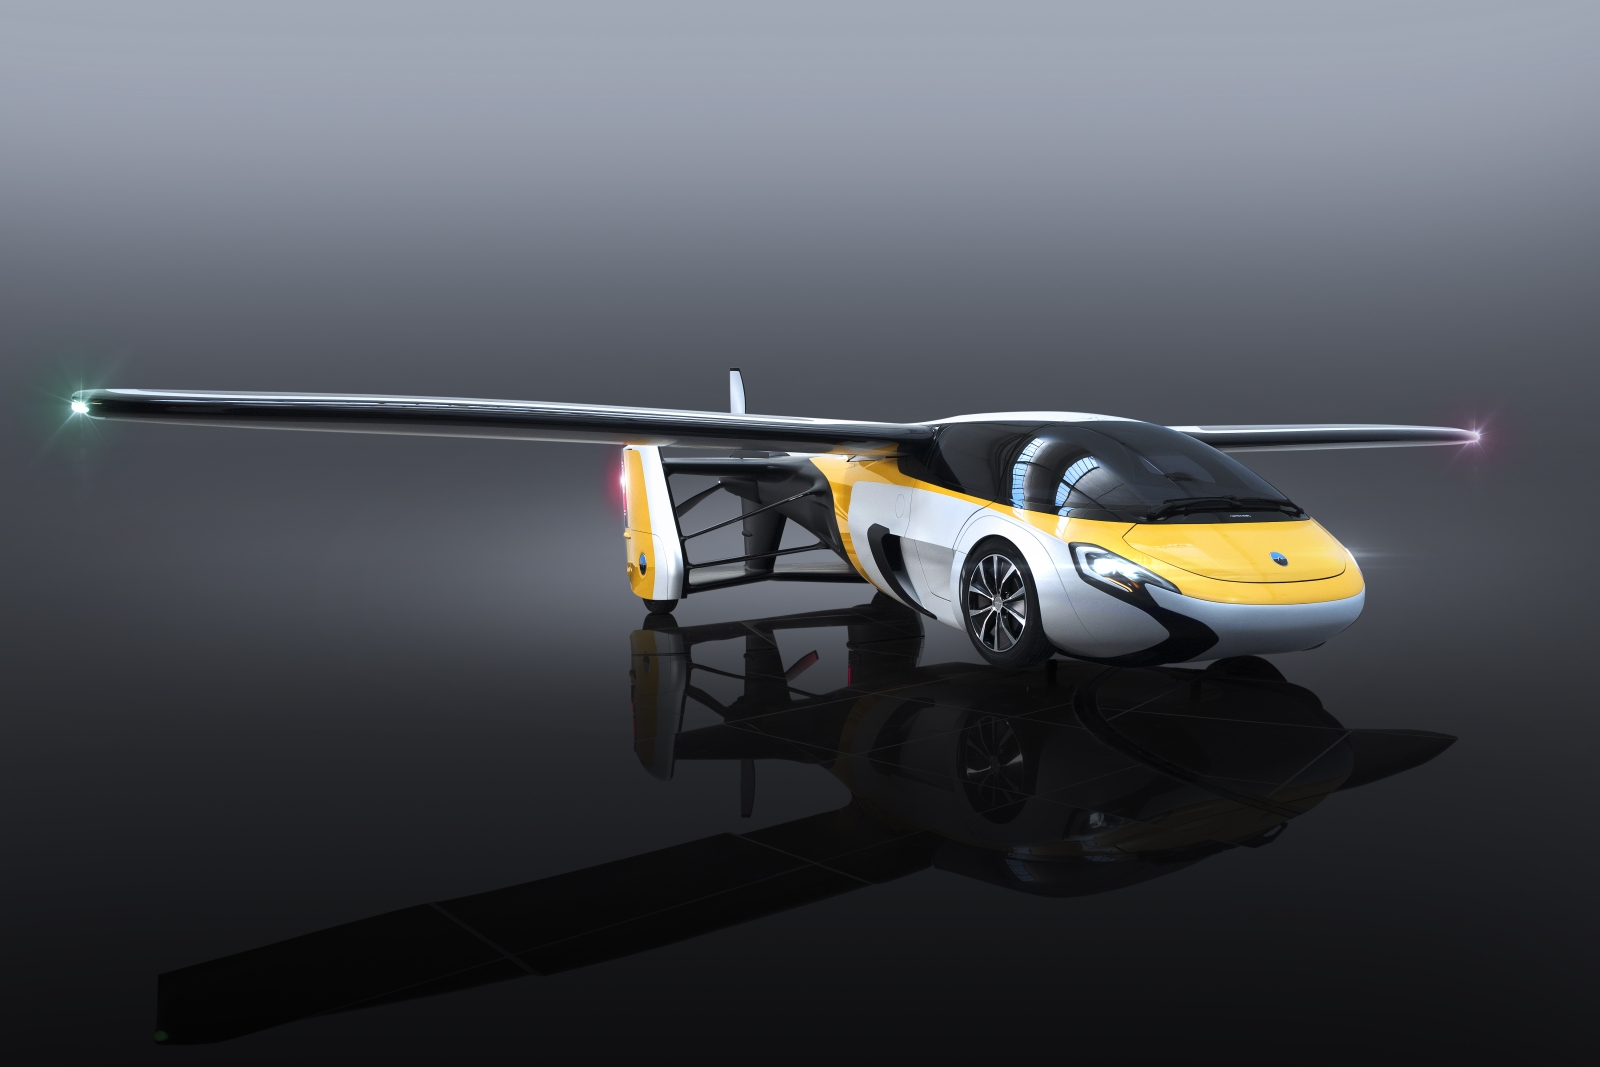 The Future Is Now: AeroMobil Debuts Million Dollar Flying Car